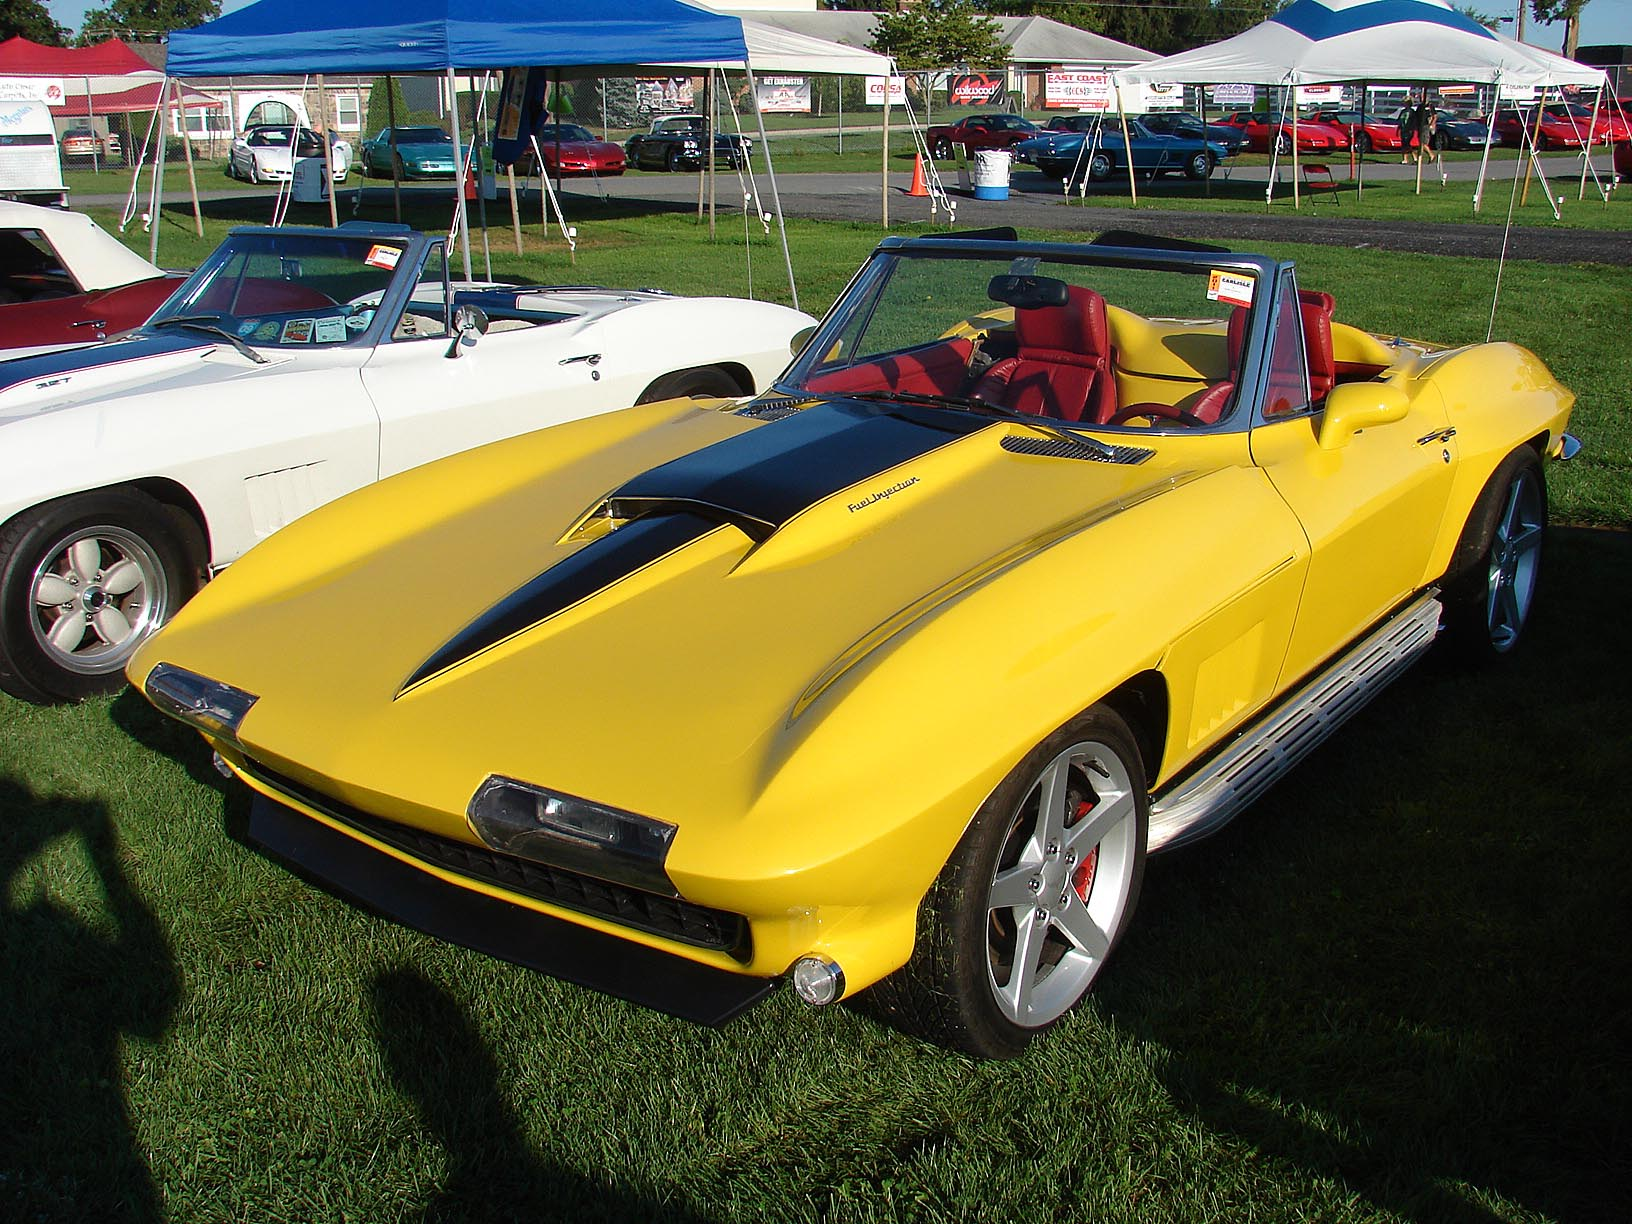 project corvettes for sale Classics on autotrader has listings for new and used 1968 chevrolet corvette classics for sale 1968 chevrolet corvette classic cars for sale project cars.